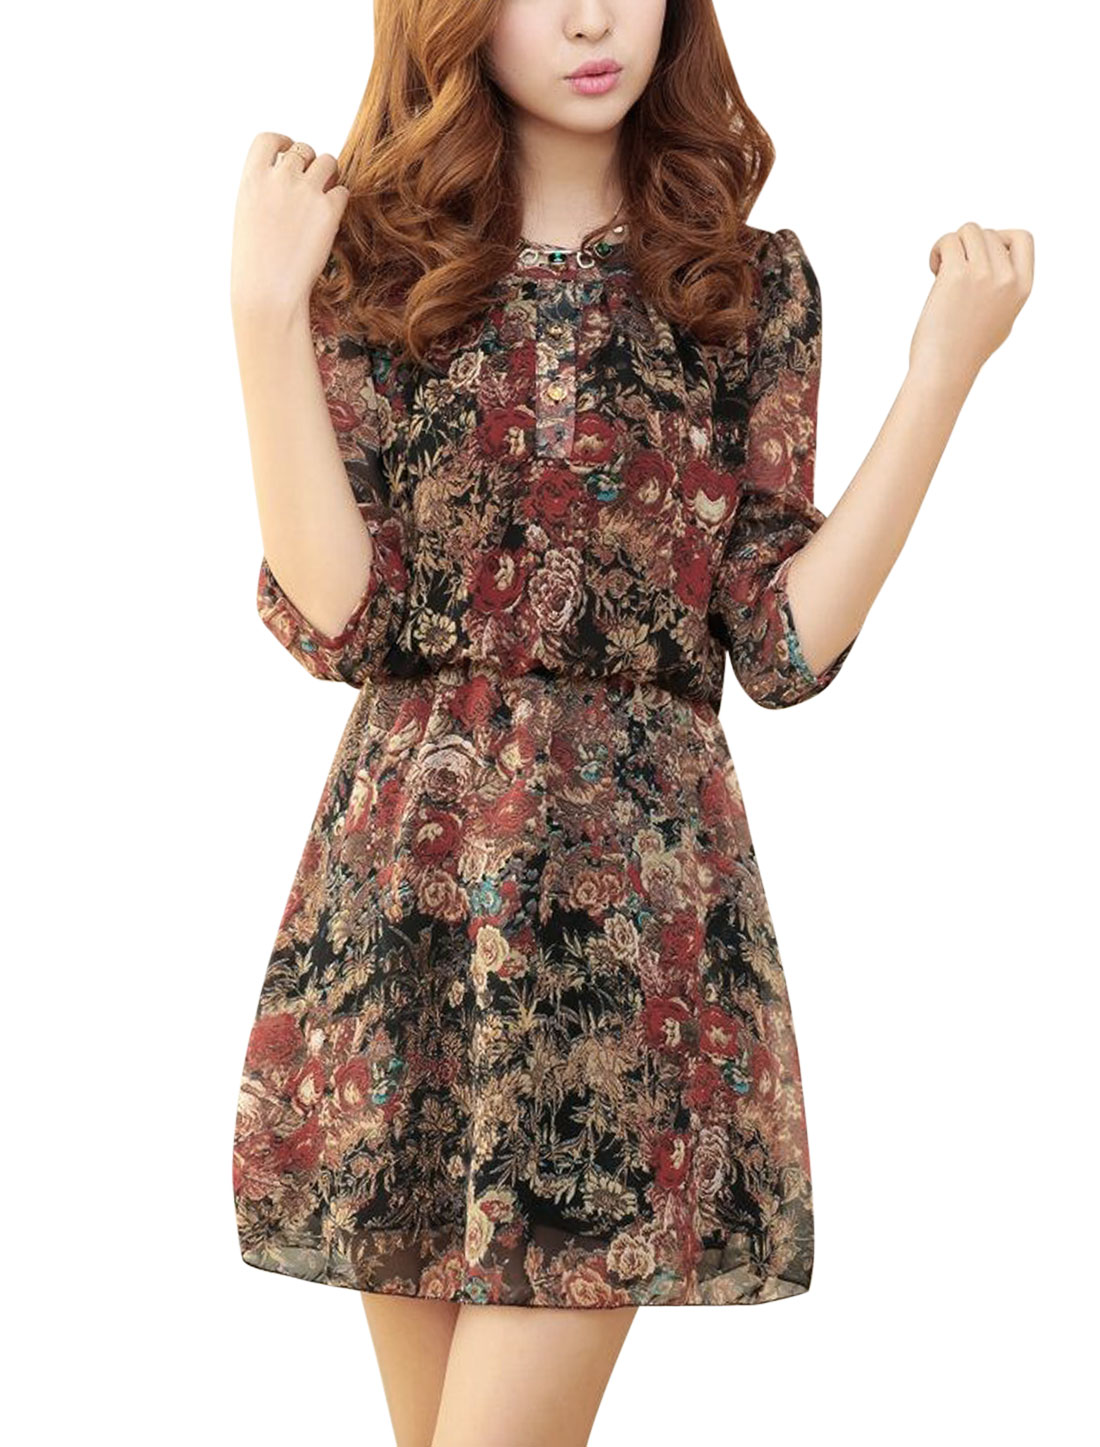 Women Floral Prints Stretchy Waist Lining Dress Burgundy S